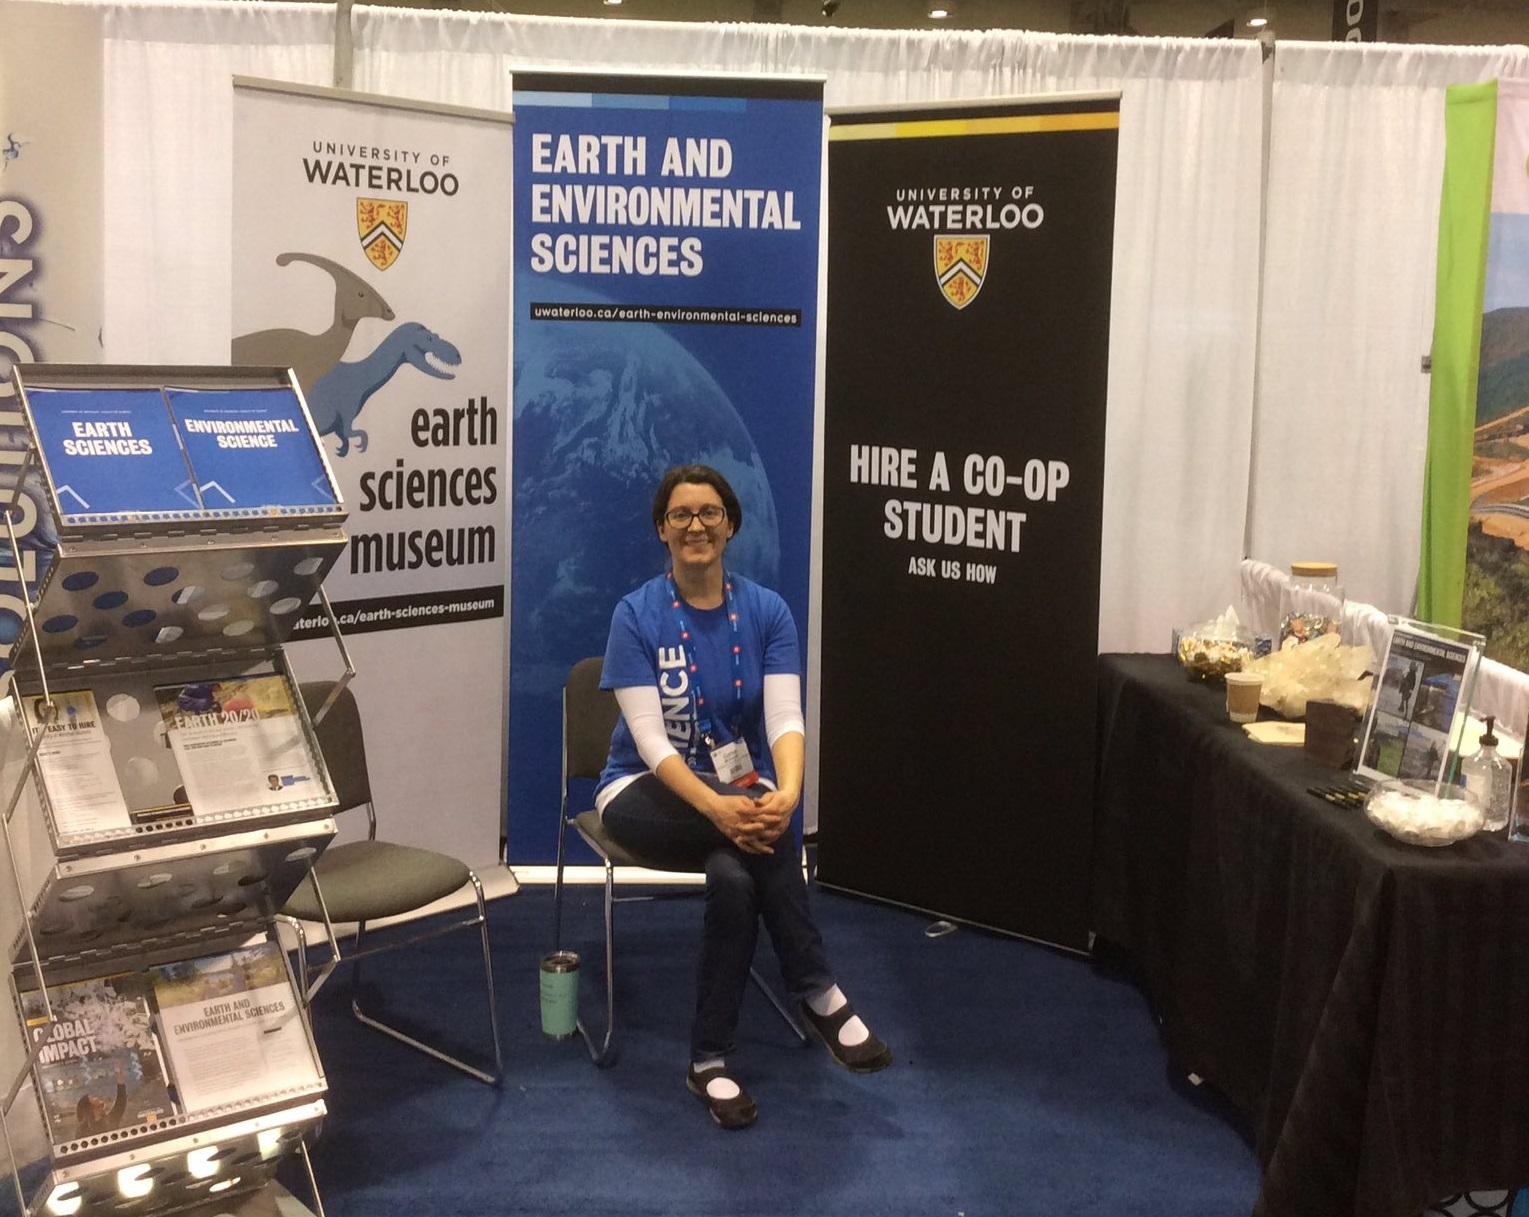 Alumni Corina McDonald (BSc '07 MSc '11and current Waterloo Earth Sciences Museum Curator) in the U Waterloo booth at PDAC 2020